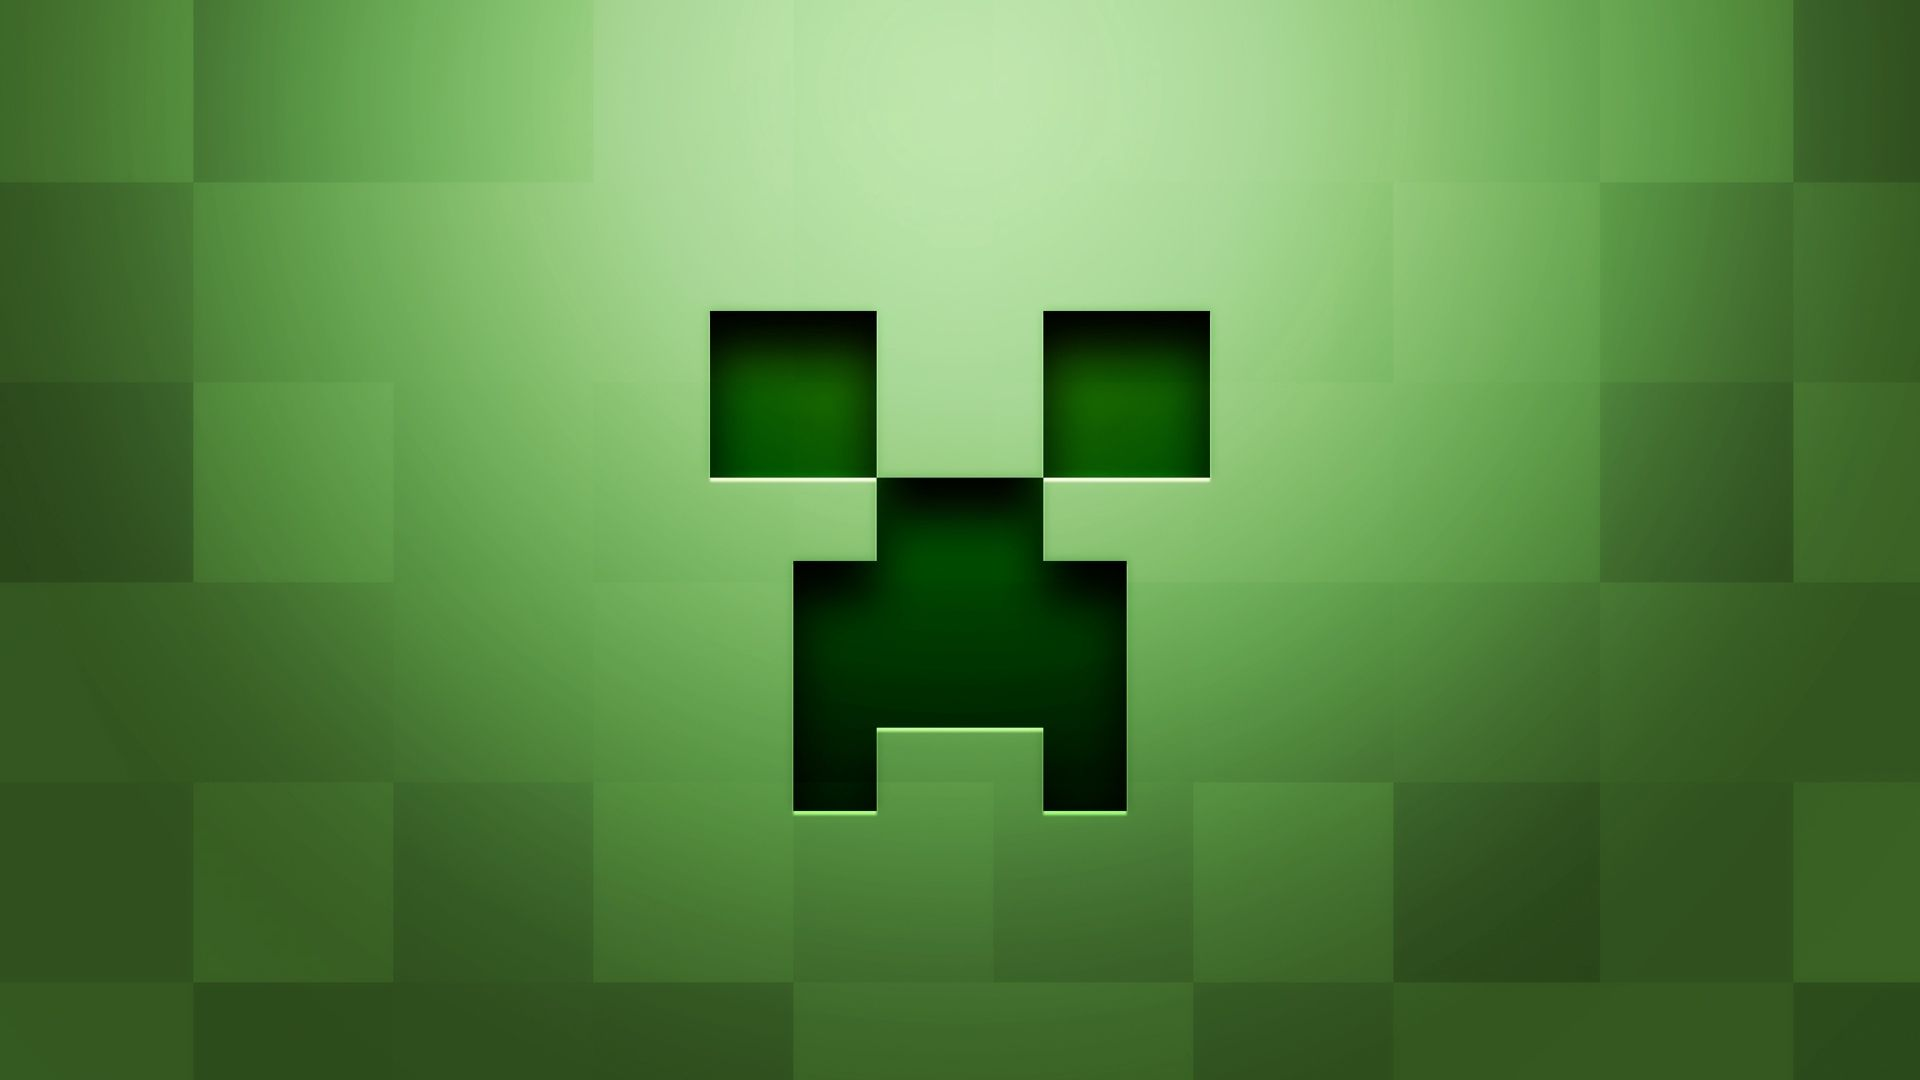 Pin By Markruse17 On Game Wallpaper Minecraft Wallpaper Minecraft Logo Background Hd Wallpaper